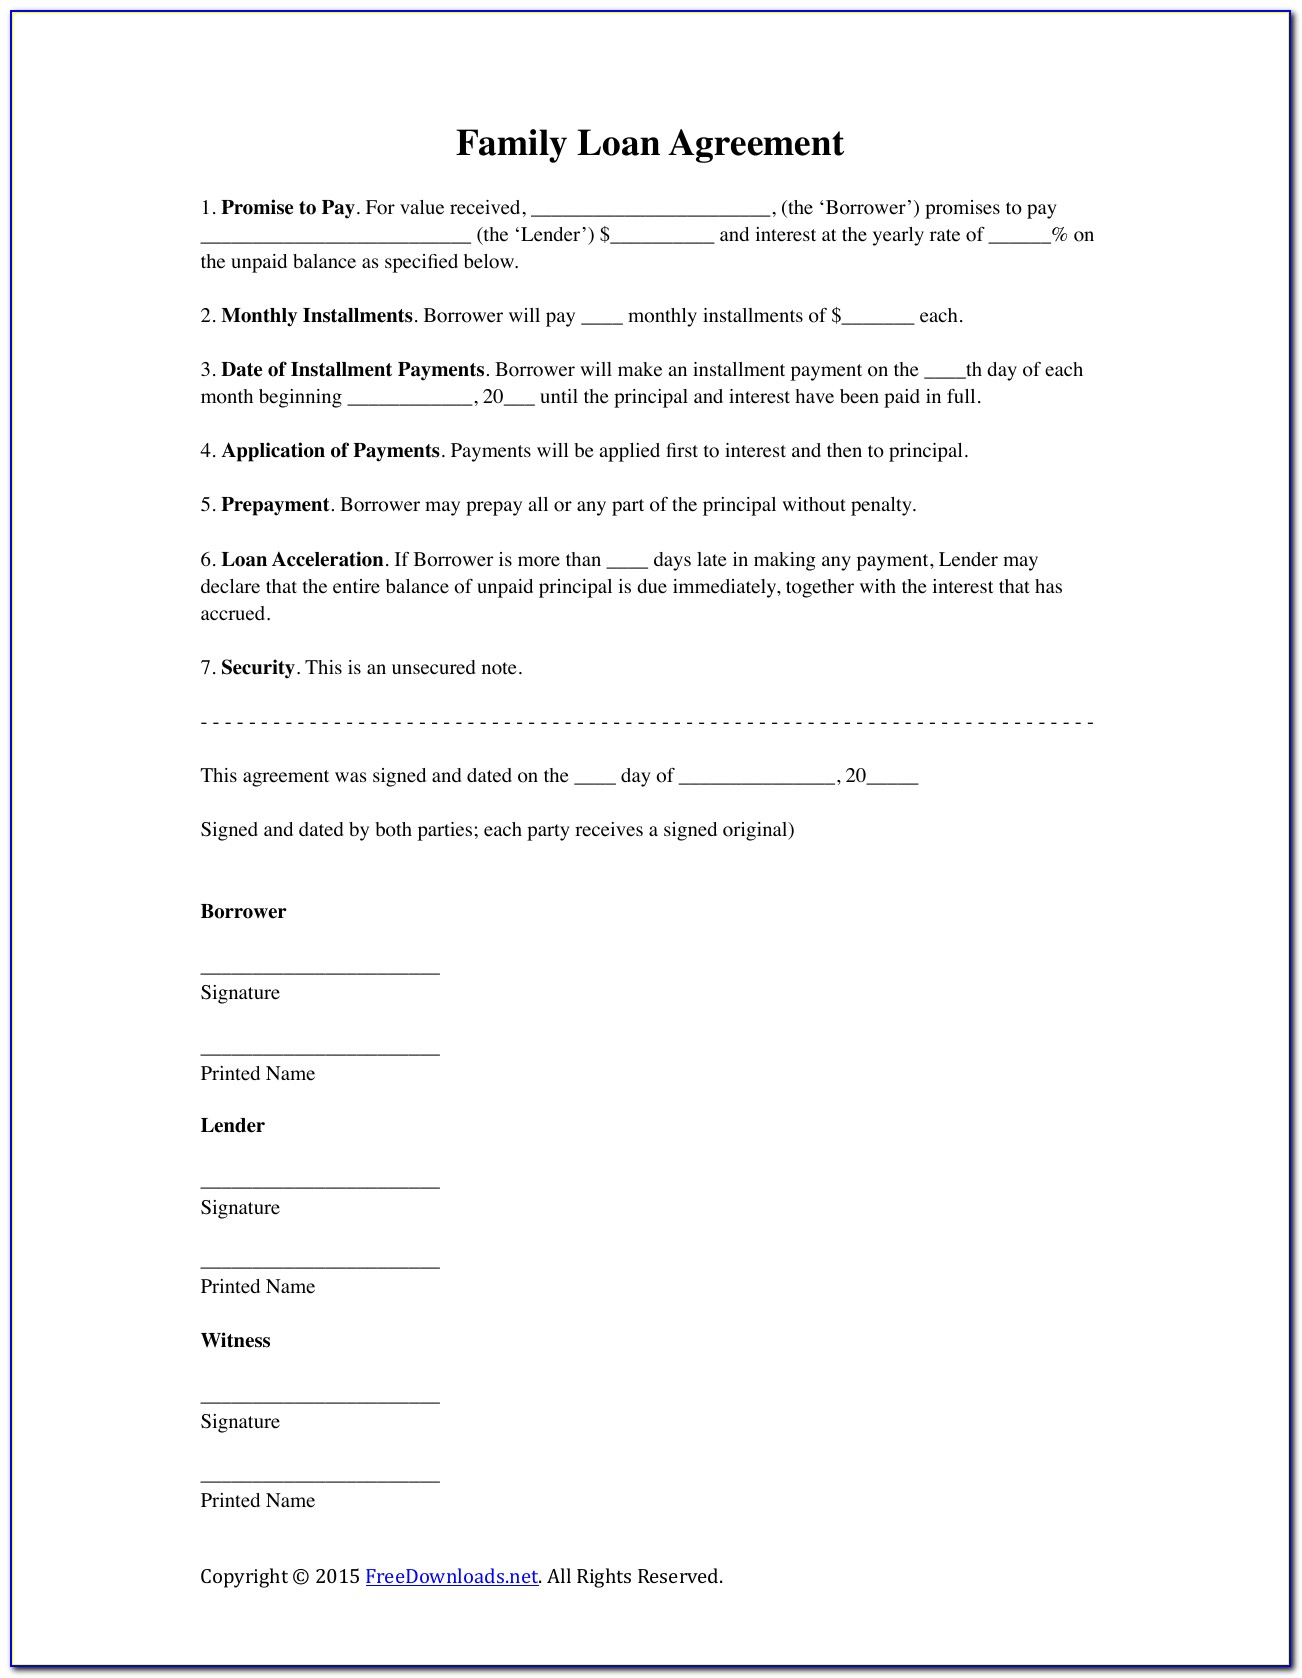 Family Loan Agreement Template Free Download